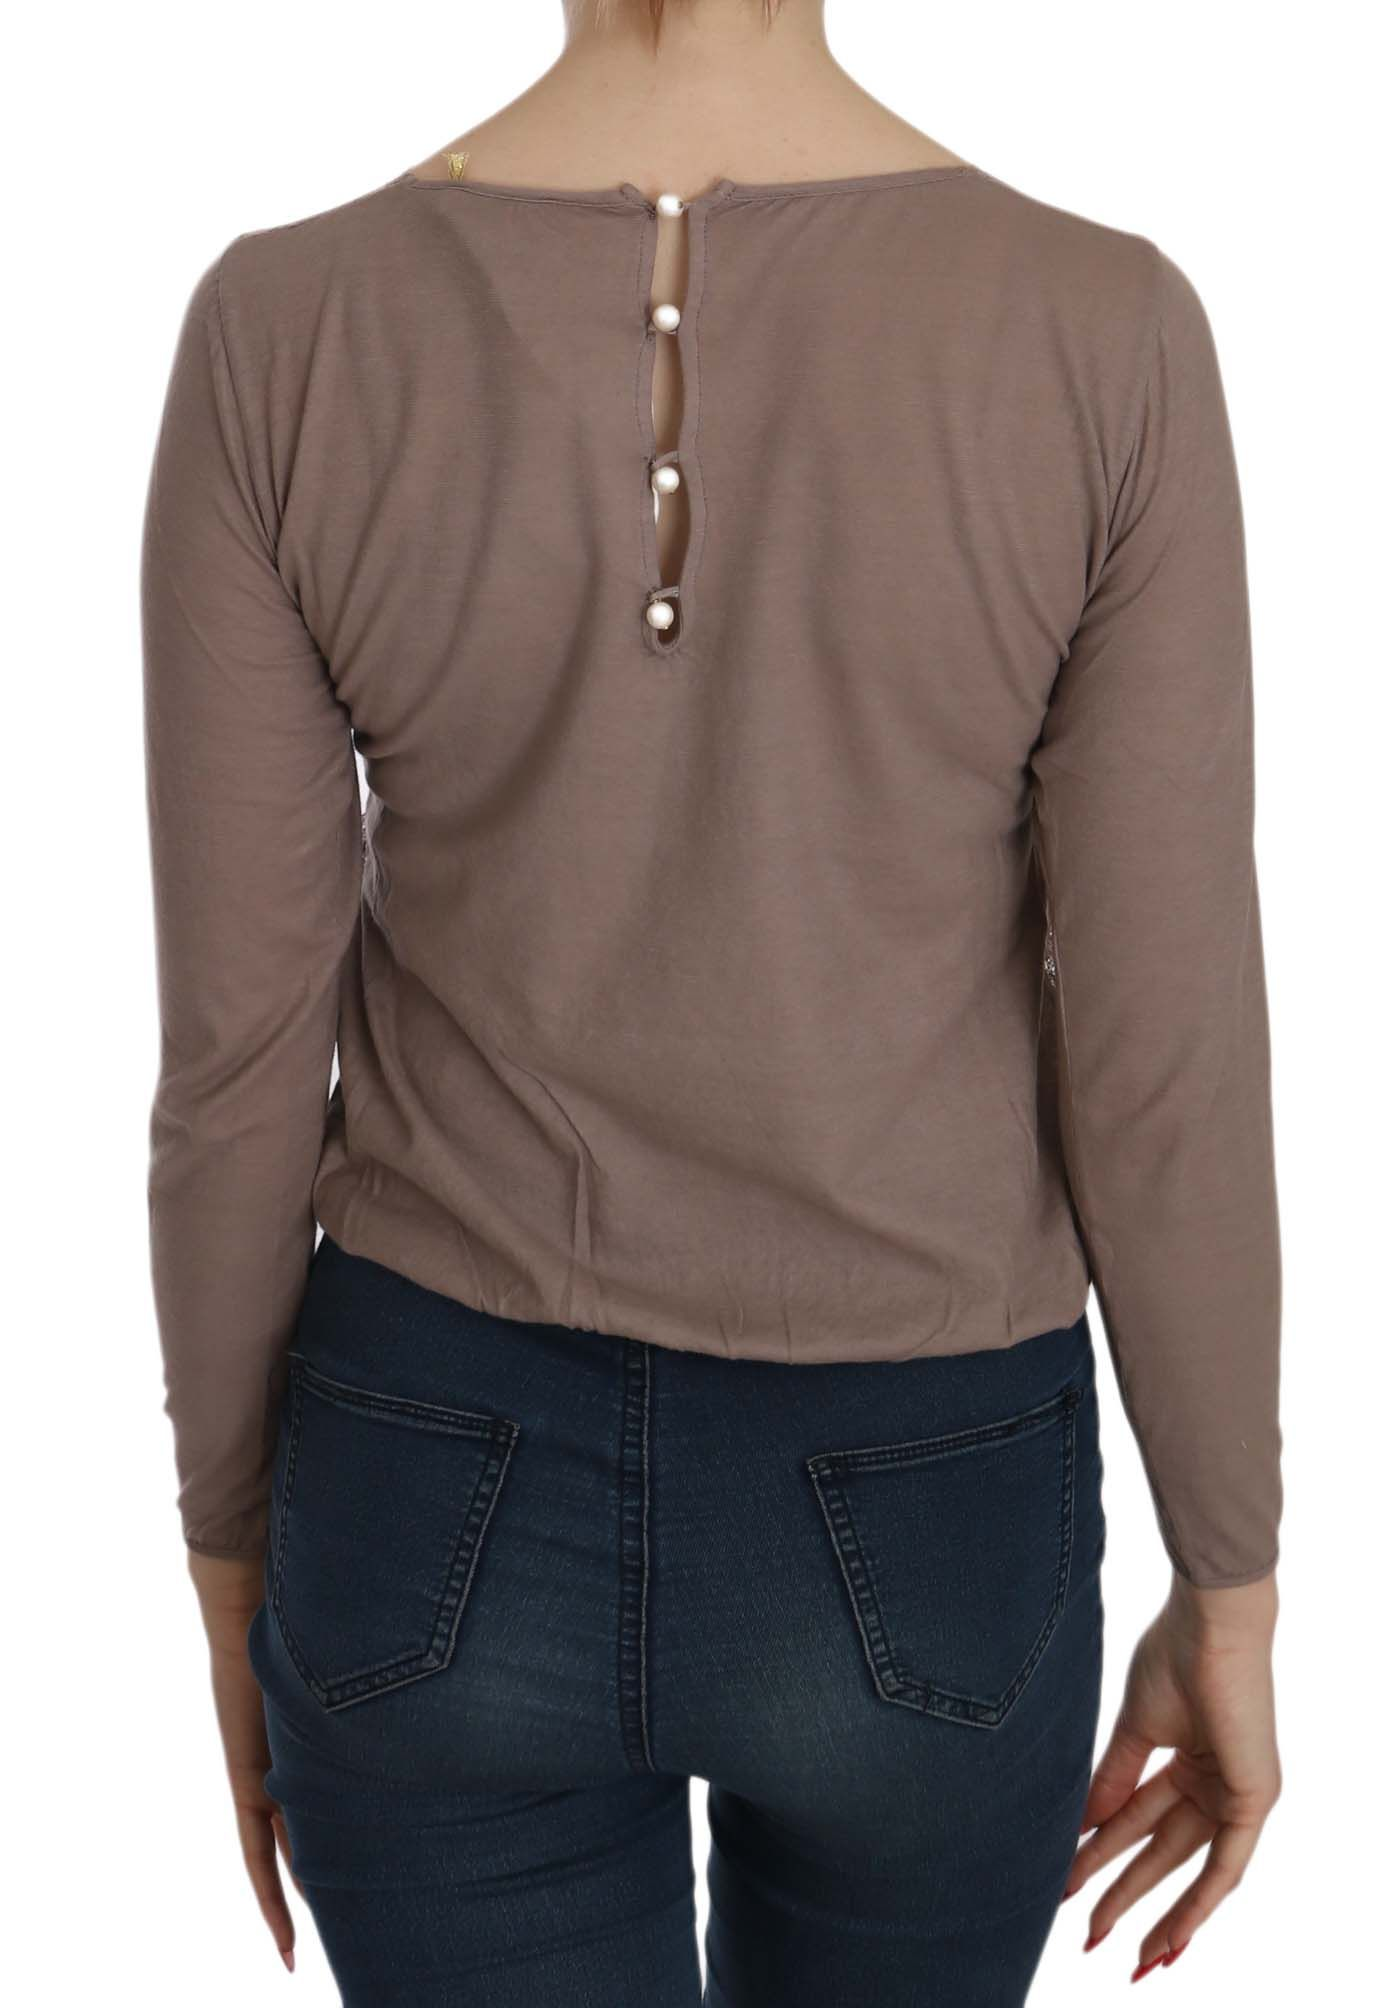 EXTE Brown Lace See Through Long Sleeve Top